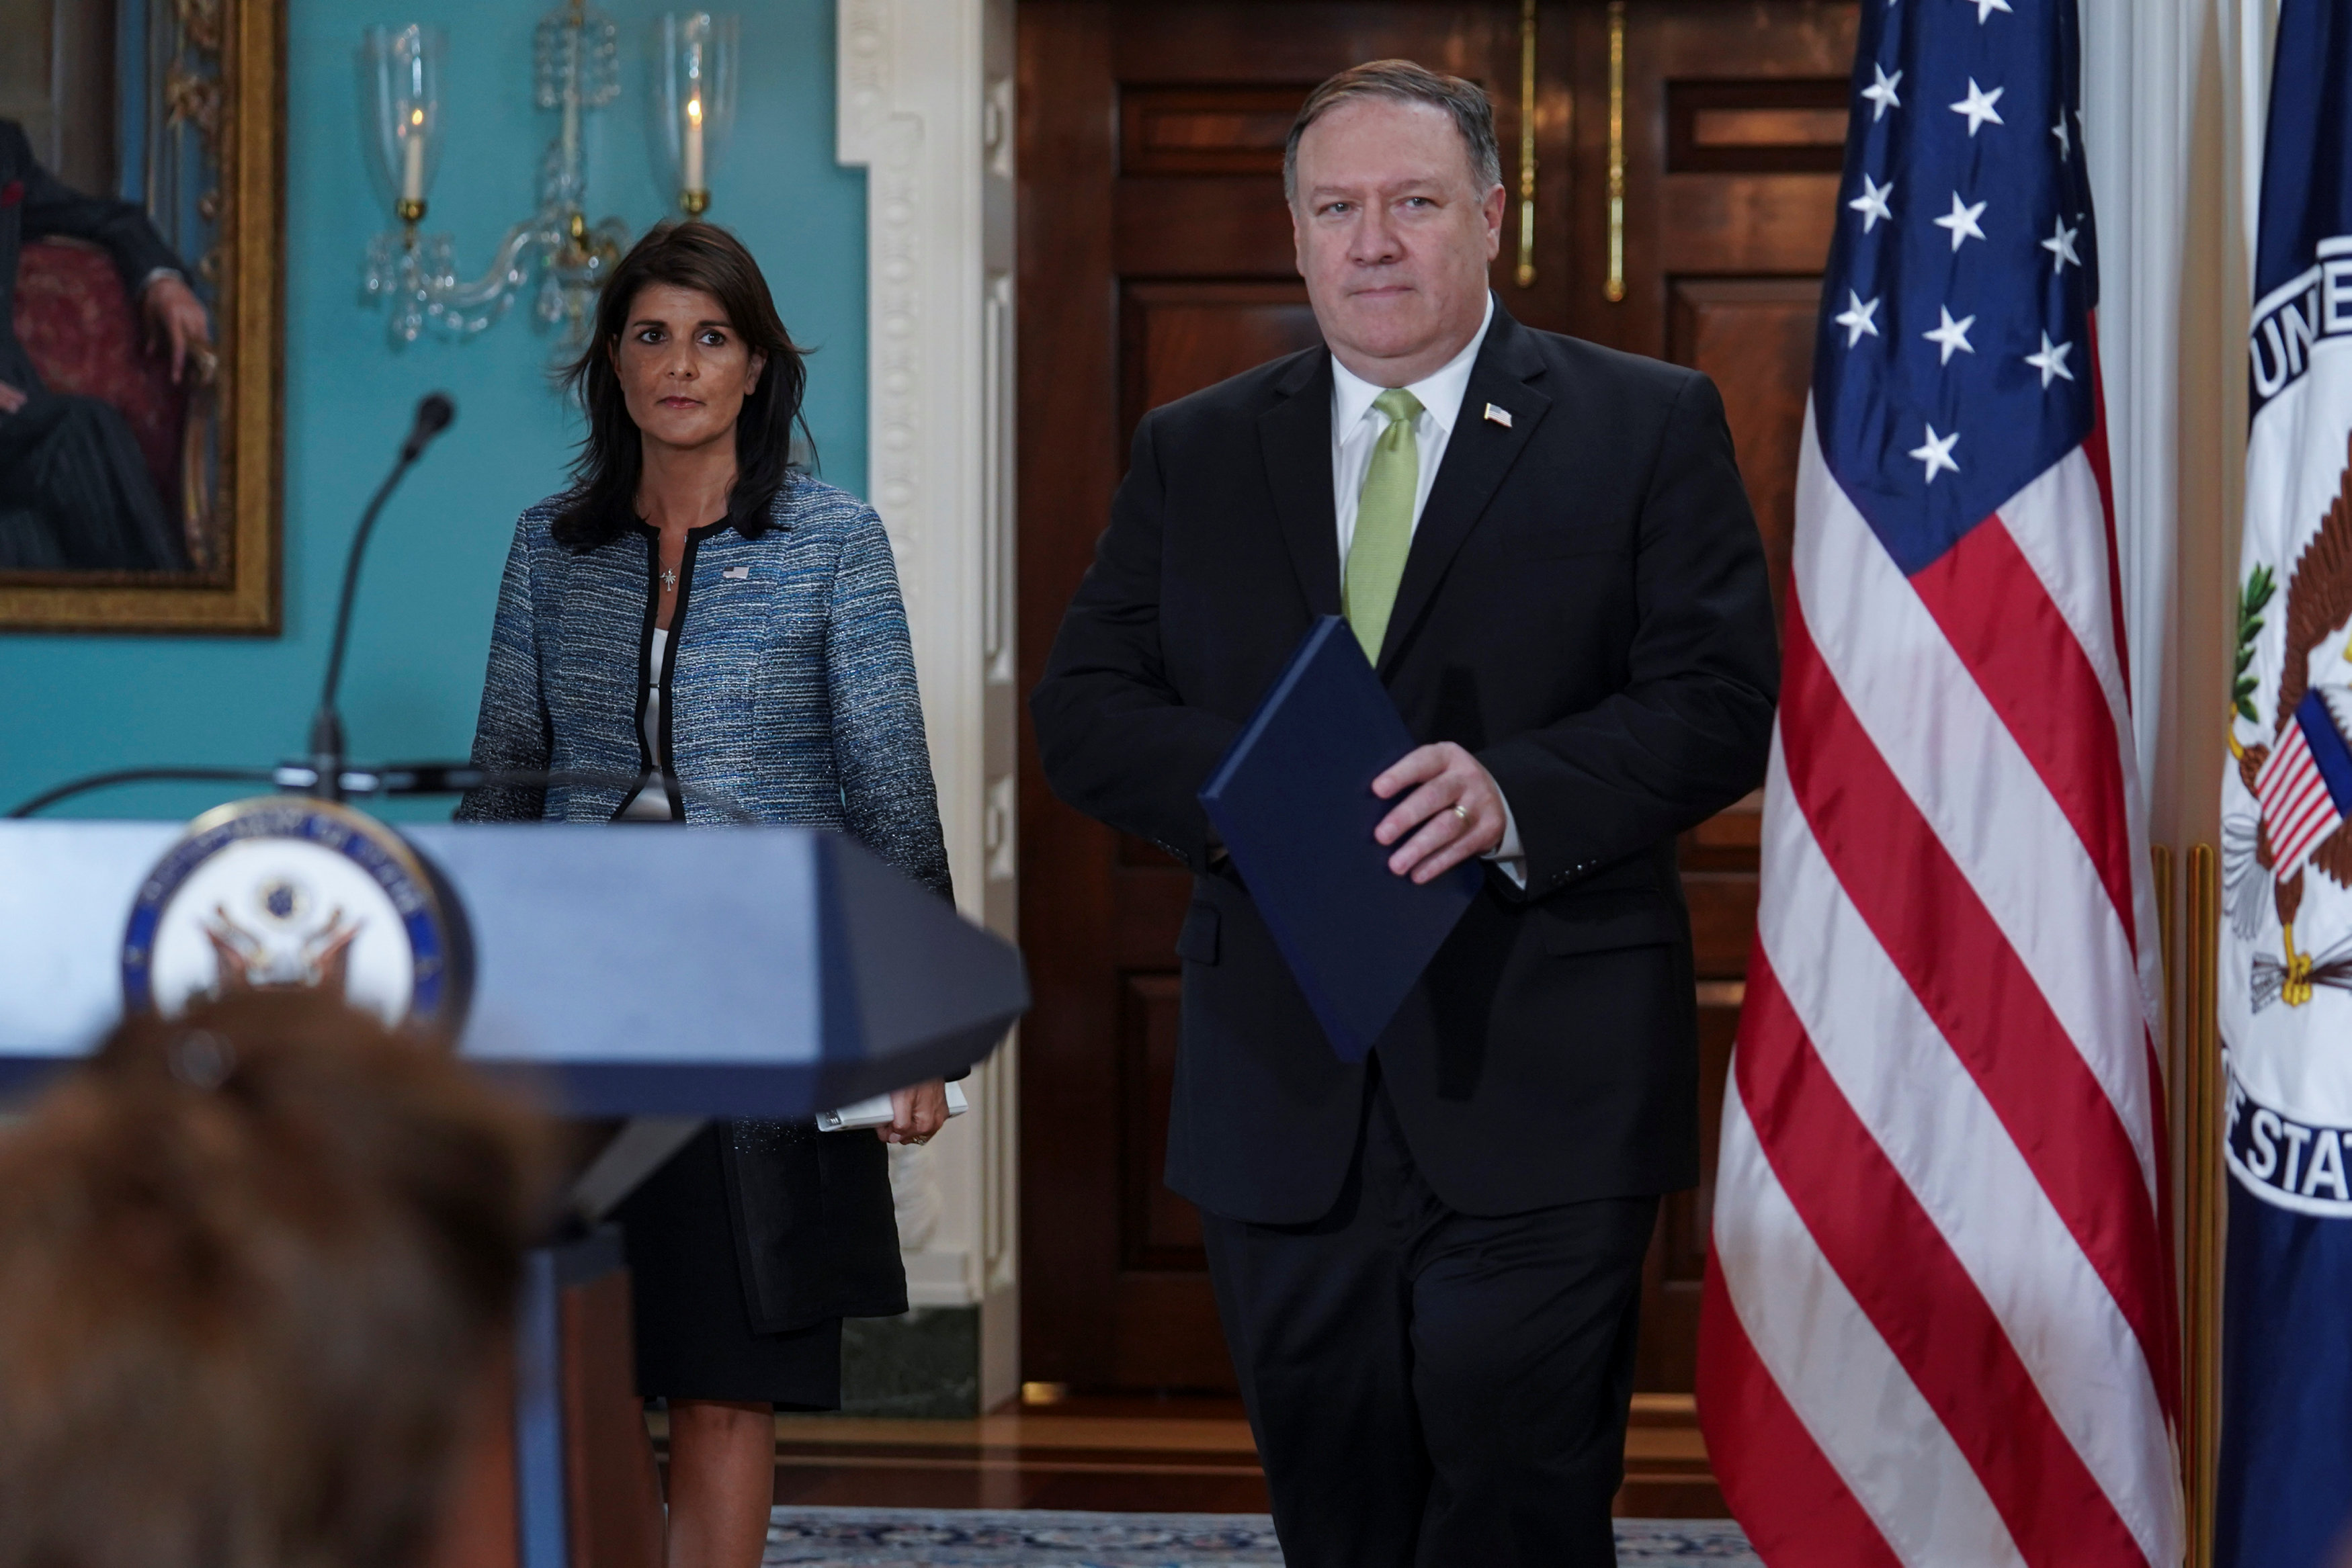 U.S. Secretary of State Mike Pompeo and U.S. Ambassador to the United Nations Nikki Haley arrive to a press briefing, announcing the U.S.'s withdrawal from the U.N's Human Rights Council at the Department of State in Washington